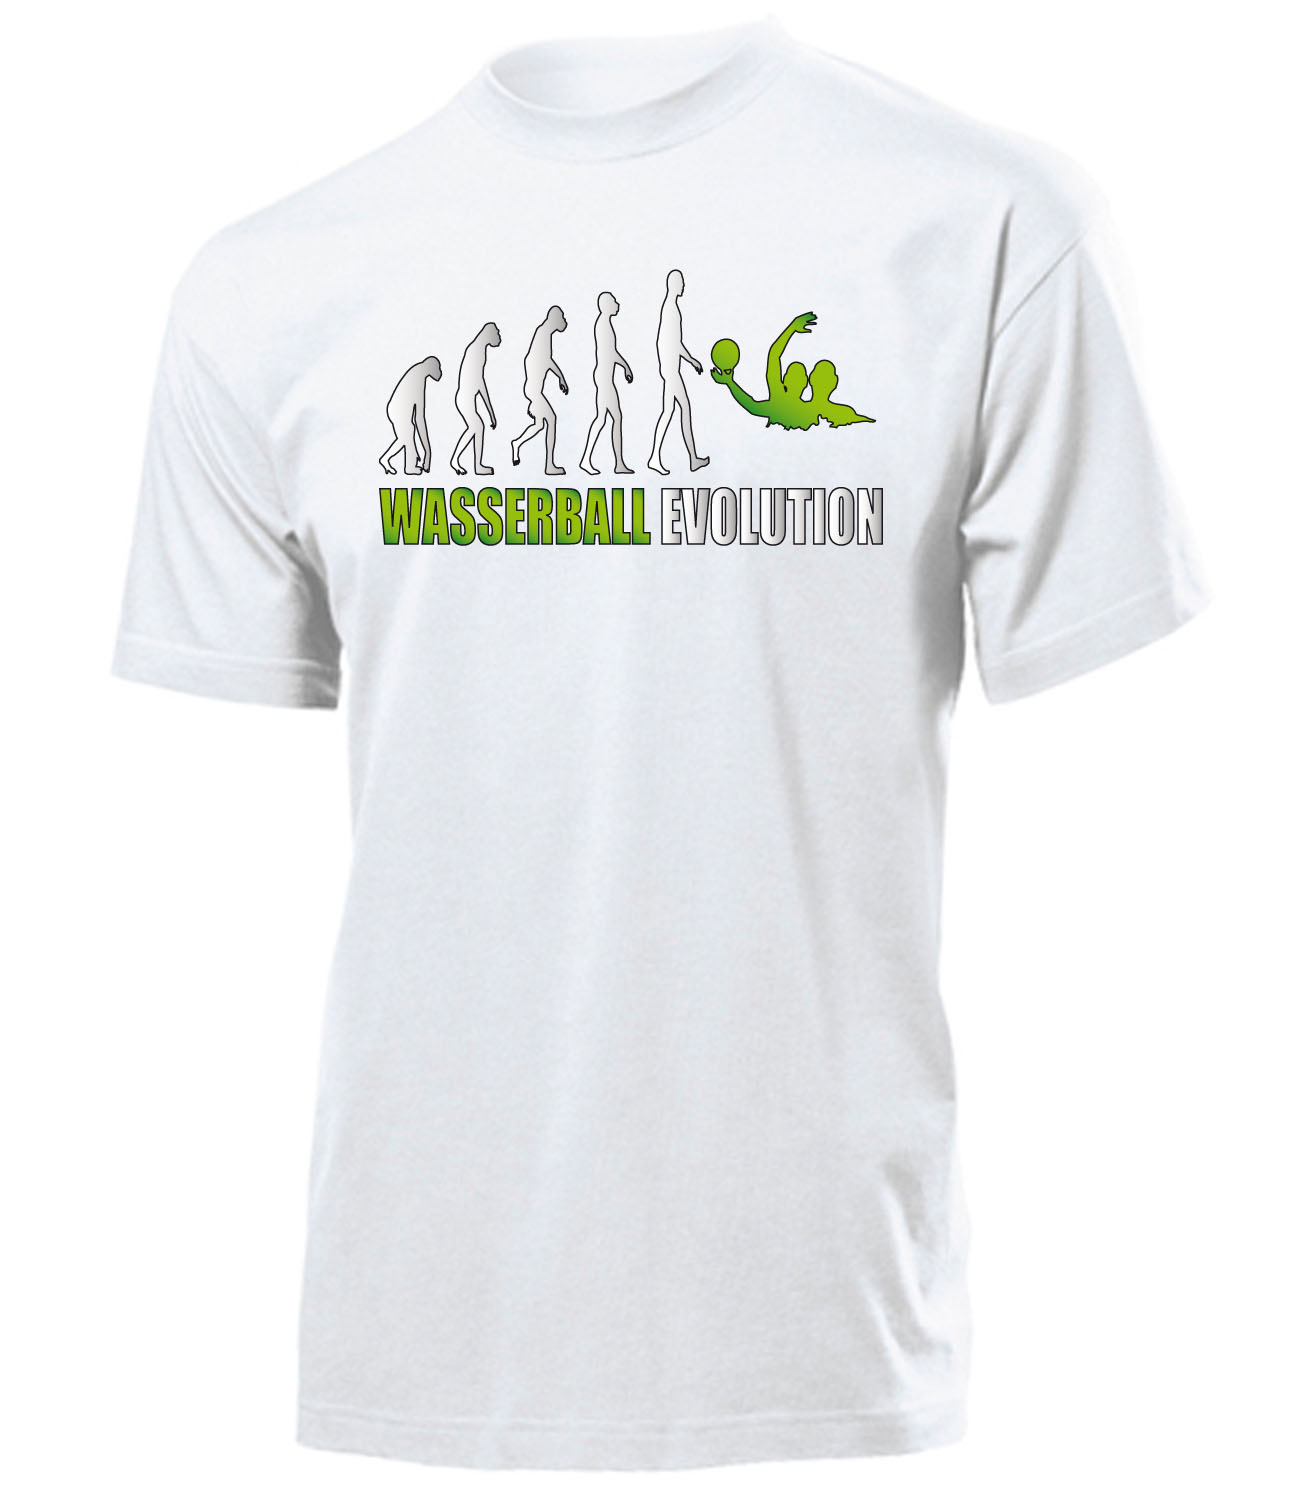 wasserball evolution t shirt herren s xxl ebay. Black Bedroom Furniture Sets. Home Design Ideas